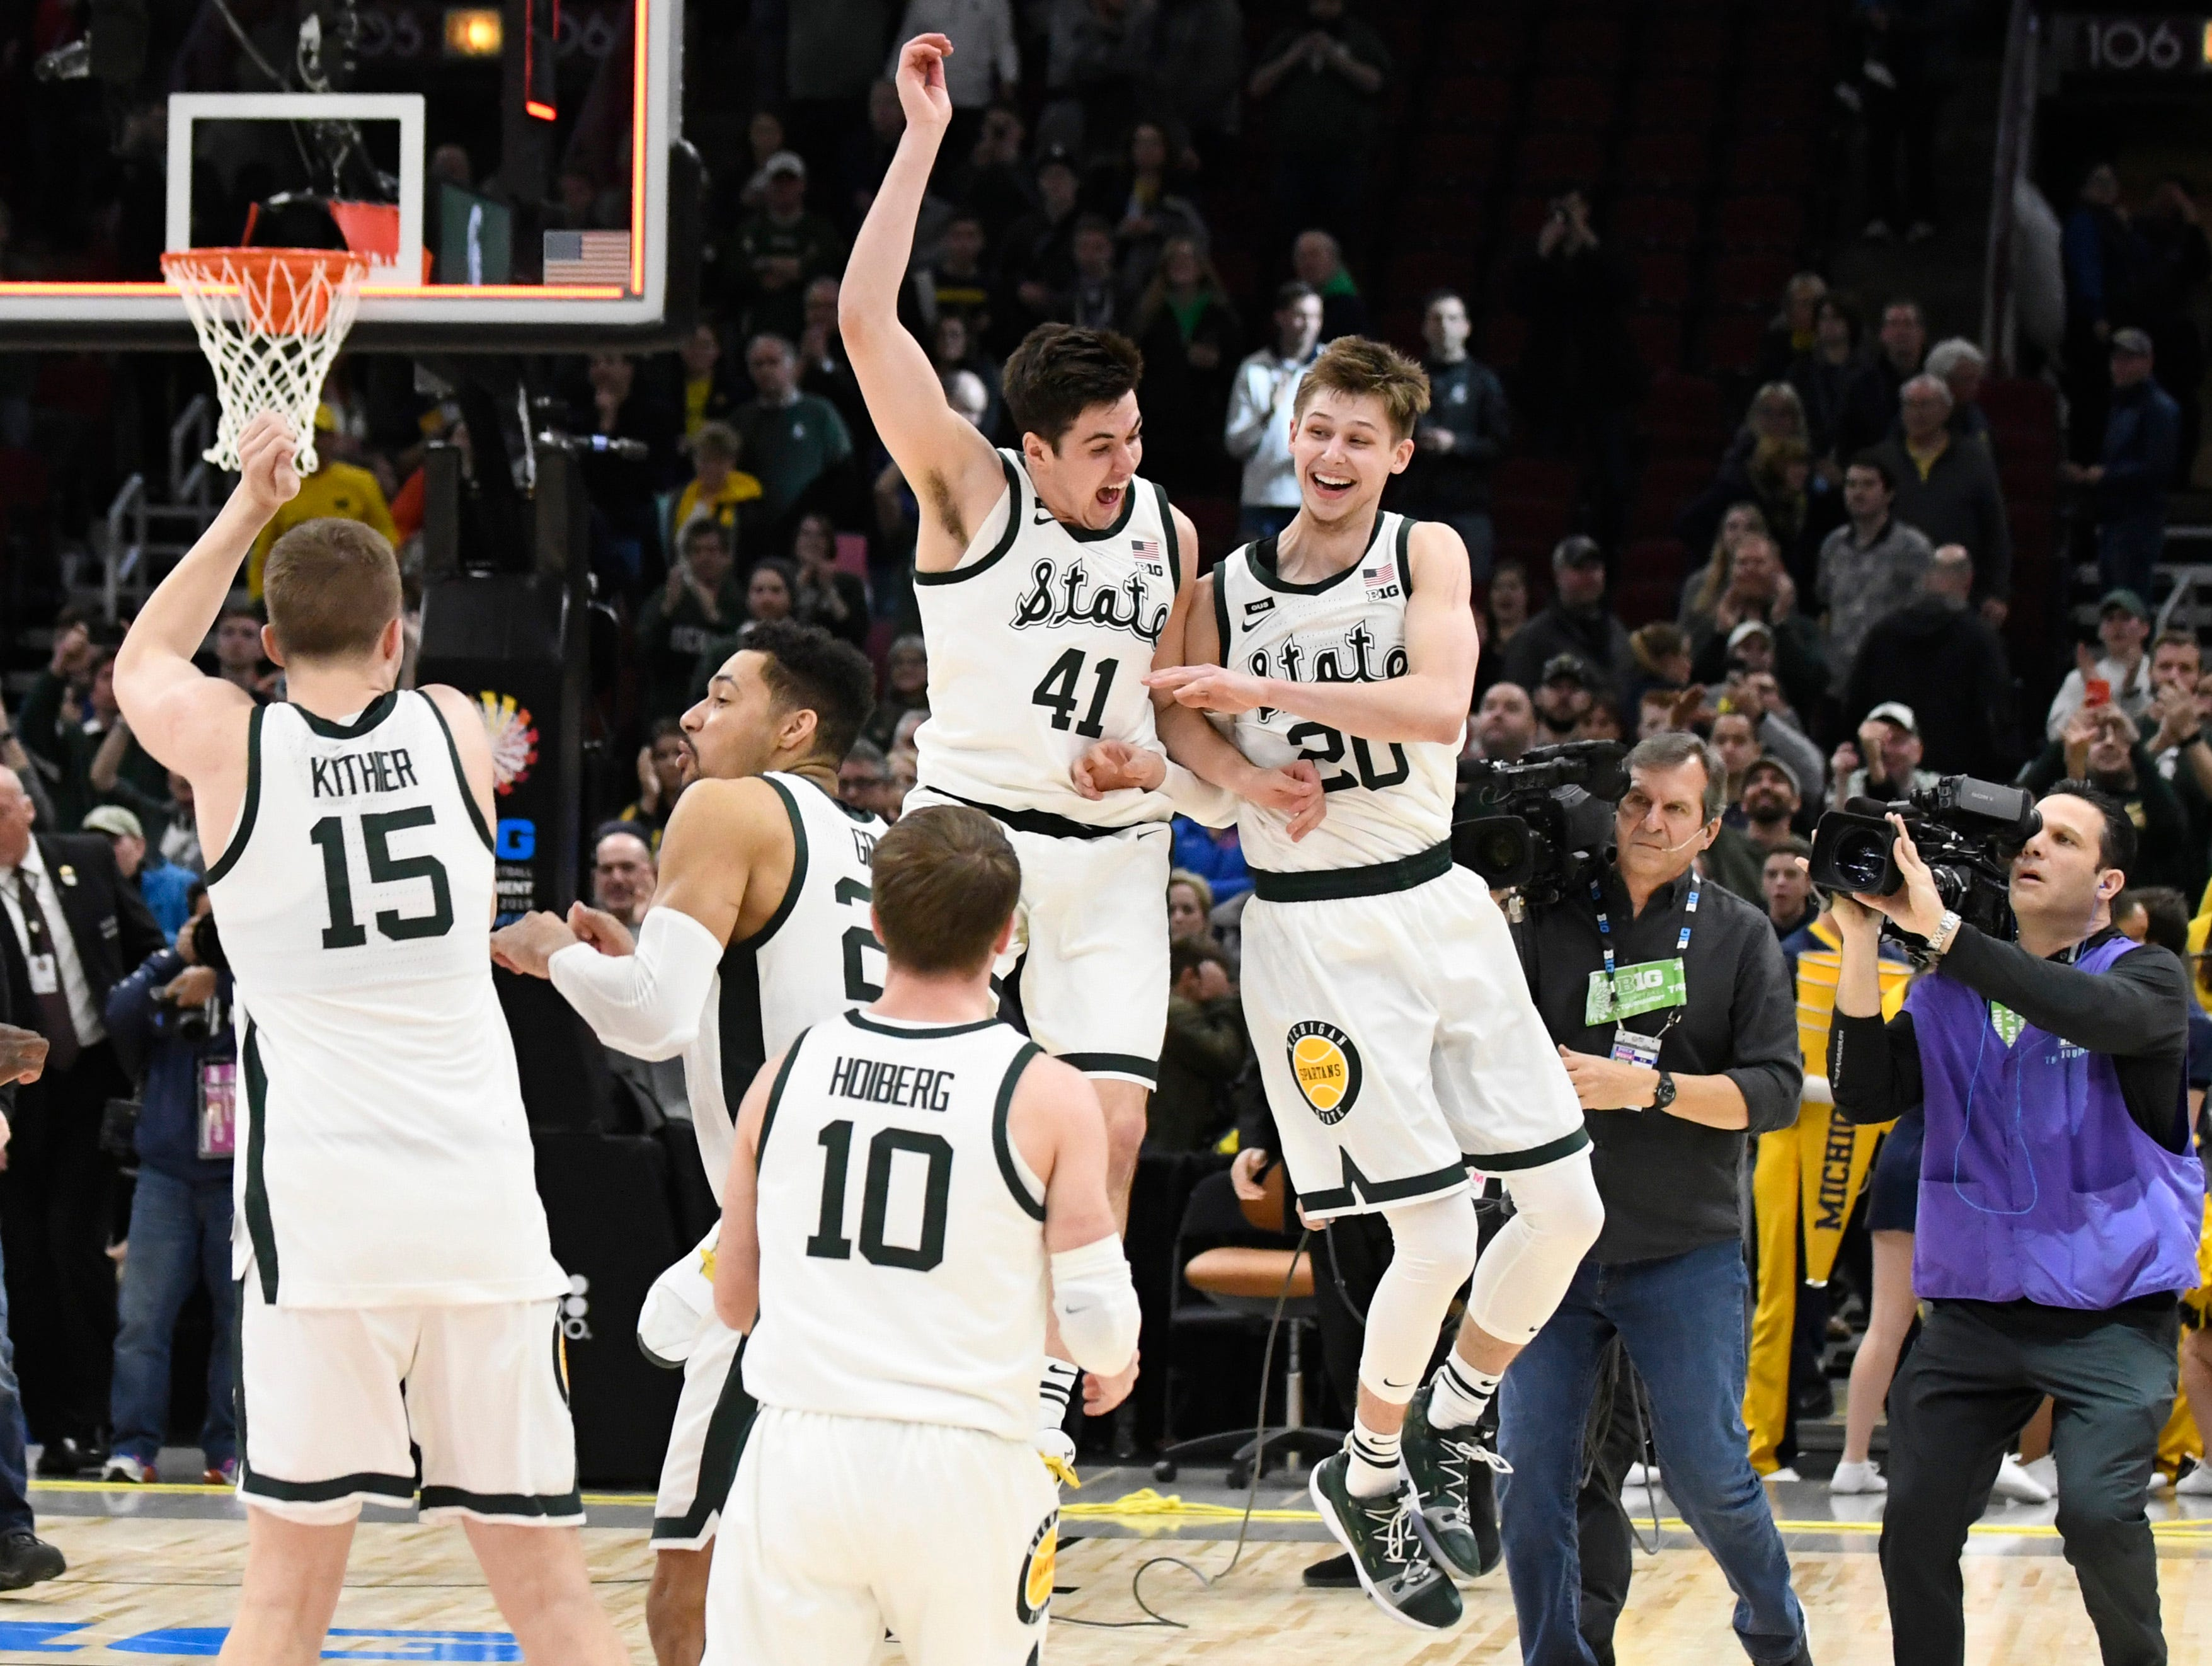 Mar 17, 2019; Chicago, IL, USA; Michigan State Spartans guard Matt McQuaid (20) and guard Conner George (41) celebrate their championship against the Michigan Wolverines in the Big Ten conference tournament at United Center. Mandatory Credit: David Banks-USA TODAY Sports